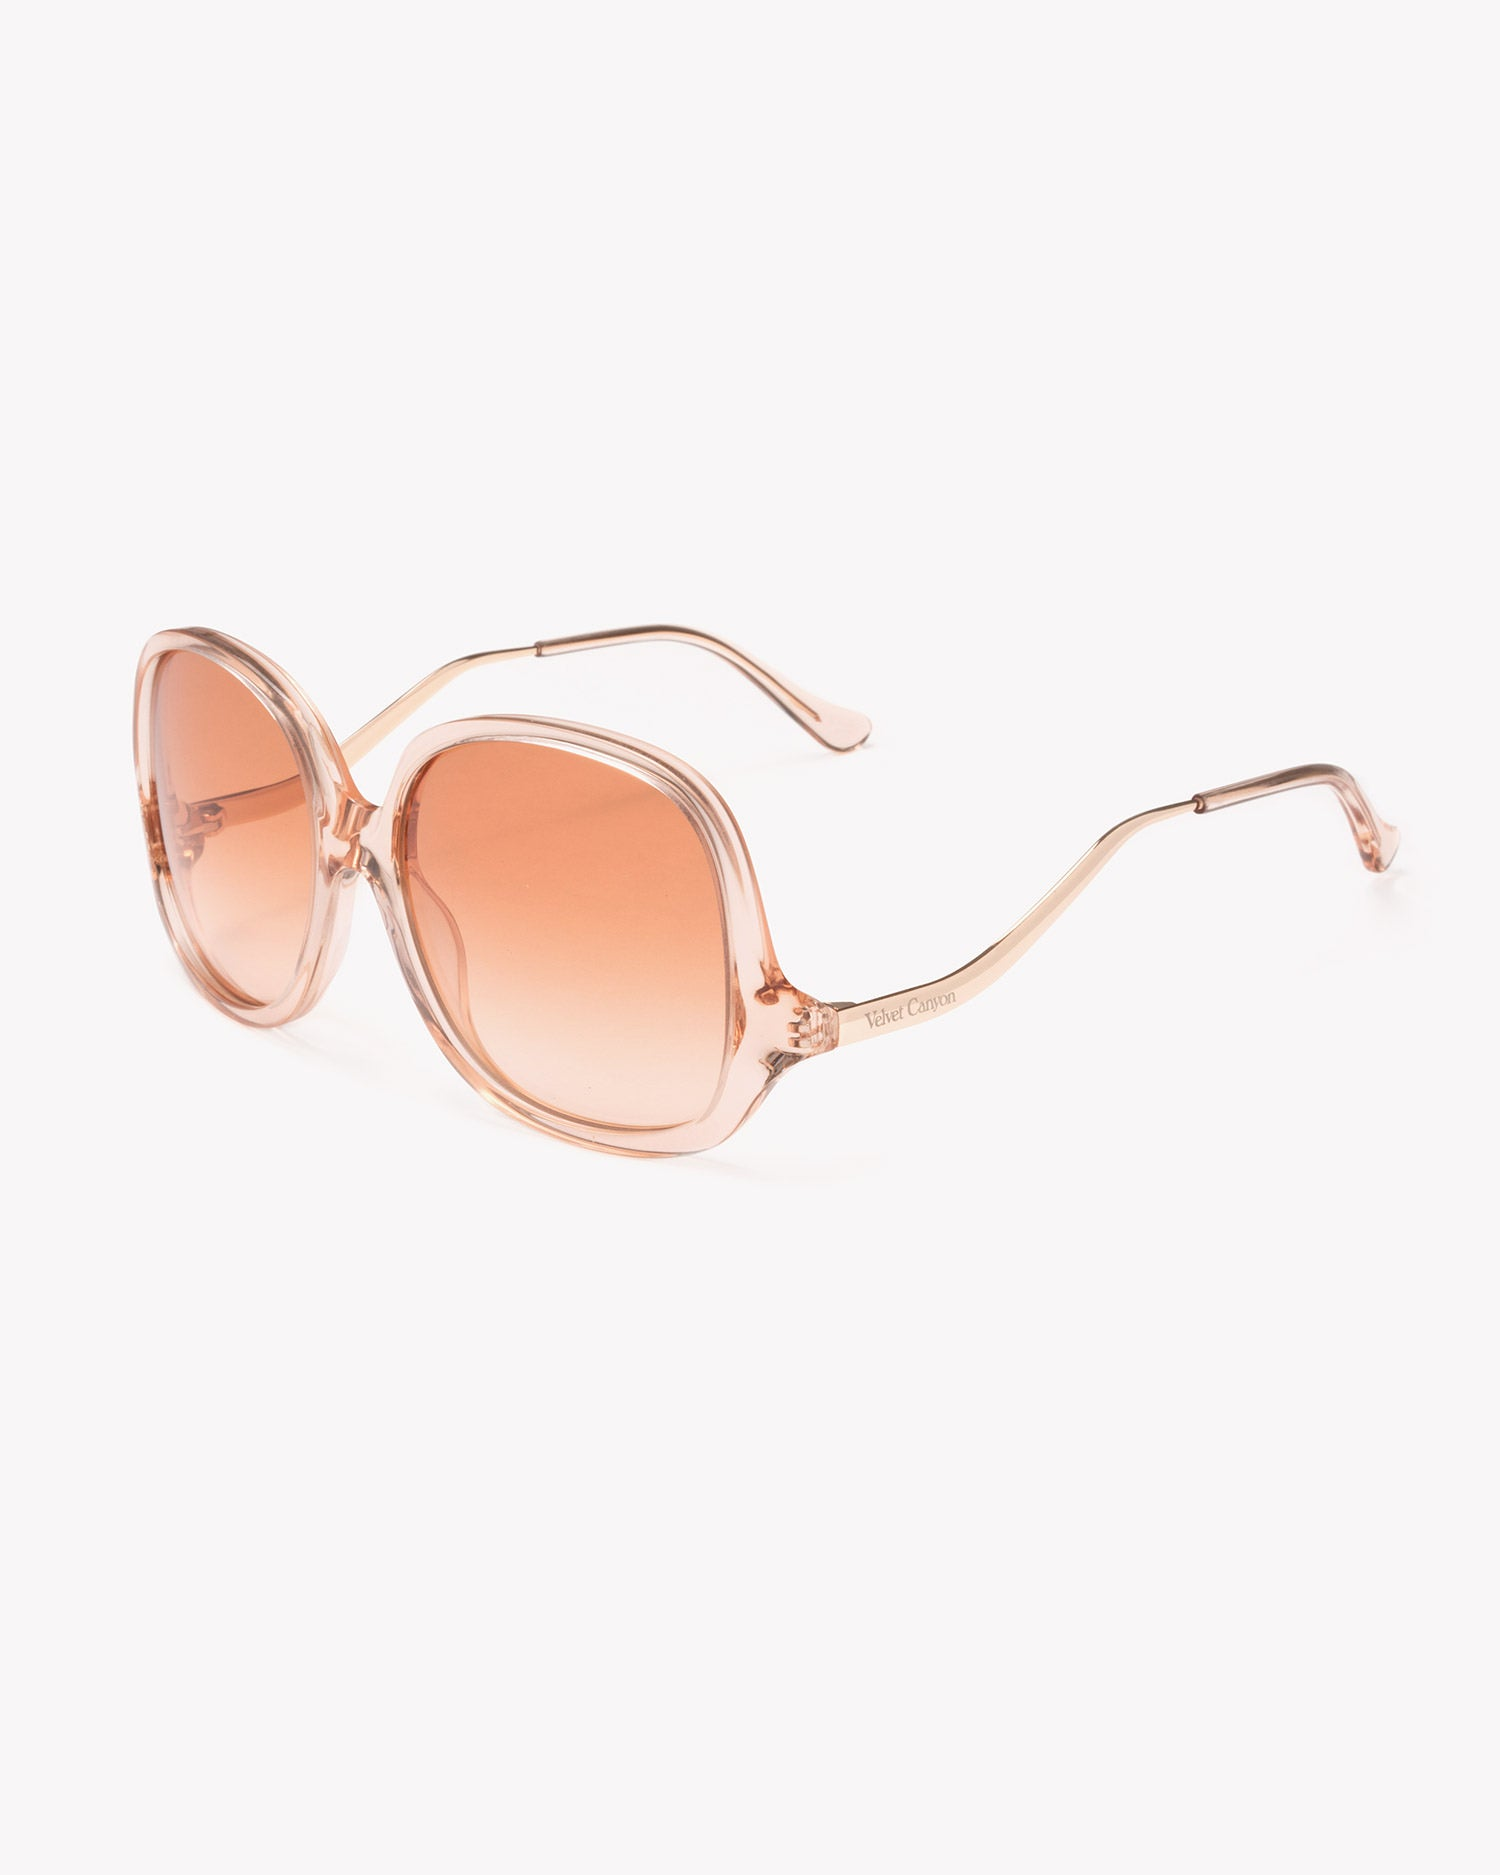 Velvet Canyon 70s vintage inspired sunglasses, Disco Inferno Peach